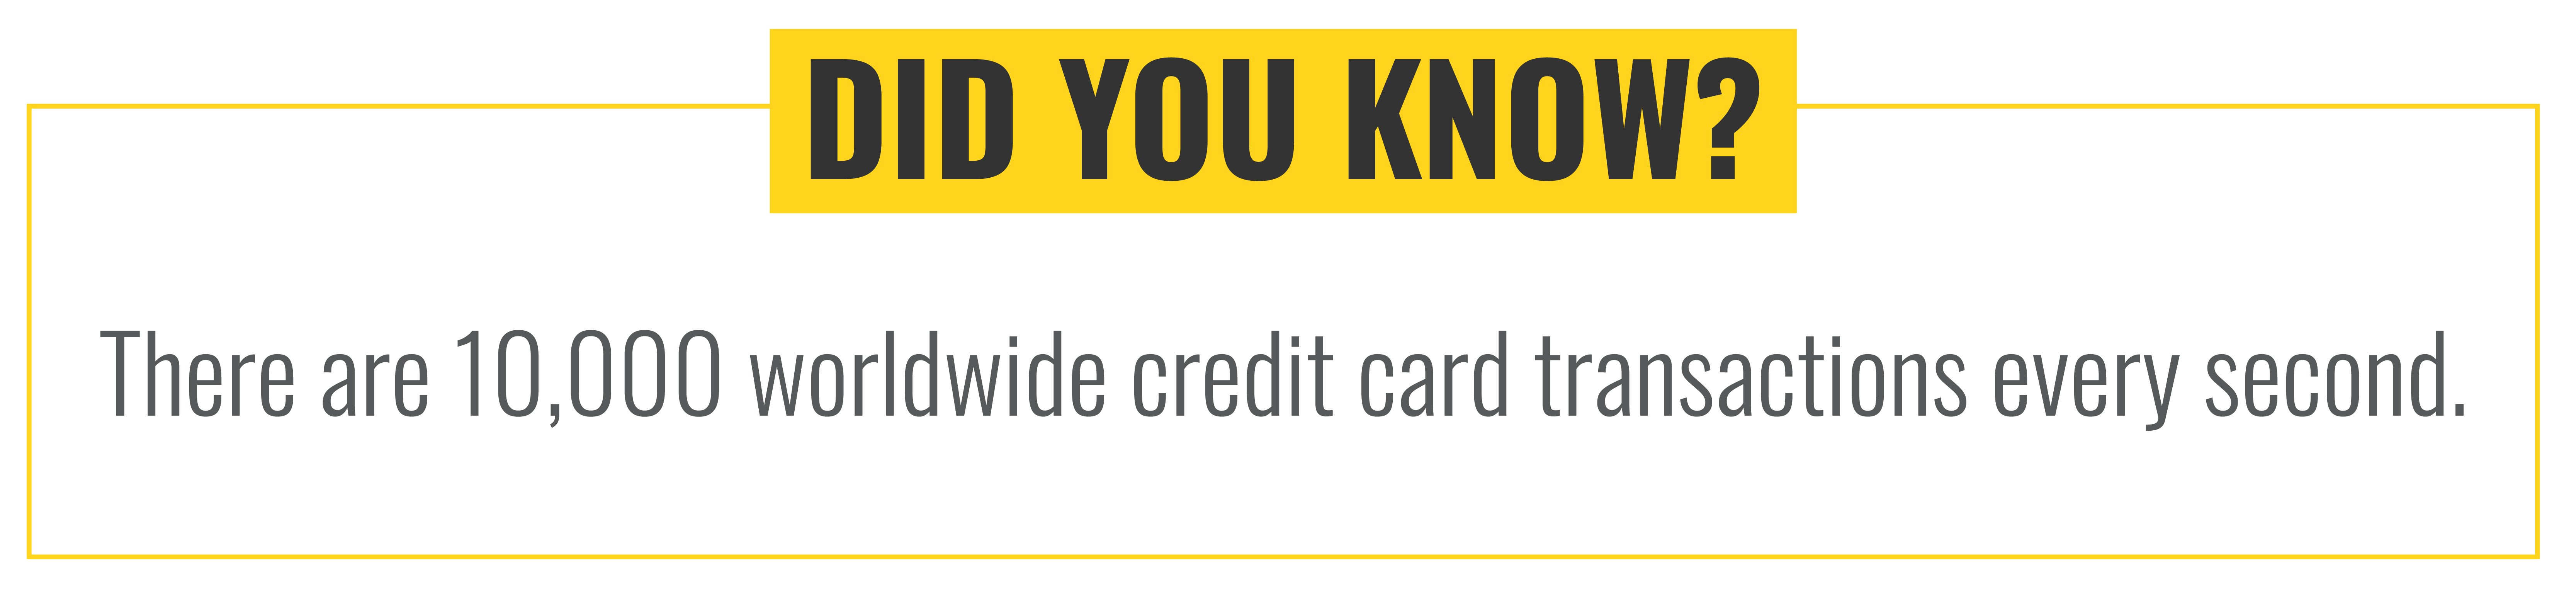 Fun Fact: There are 10,000 worldwide credit card transactions every second.